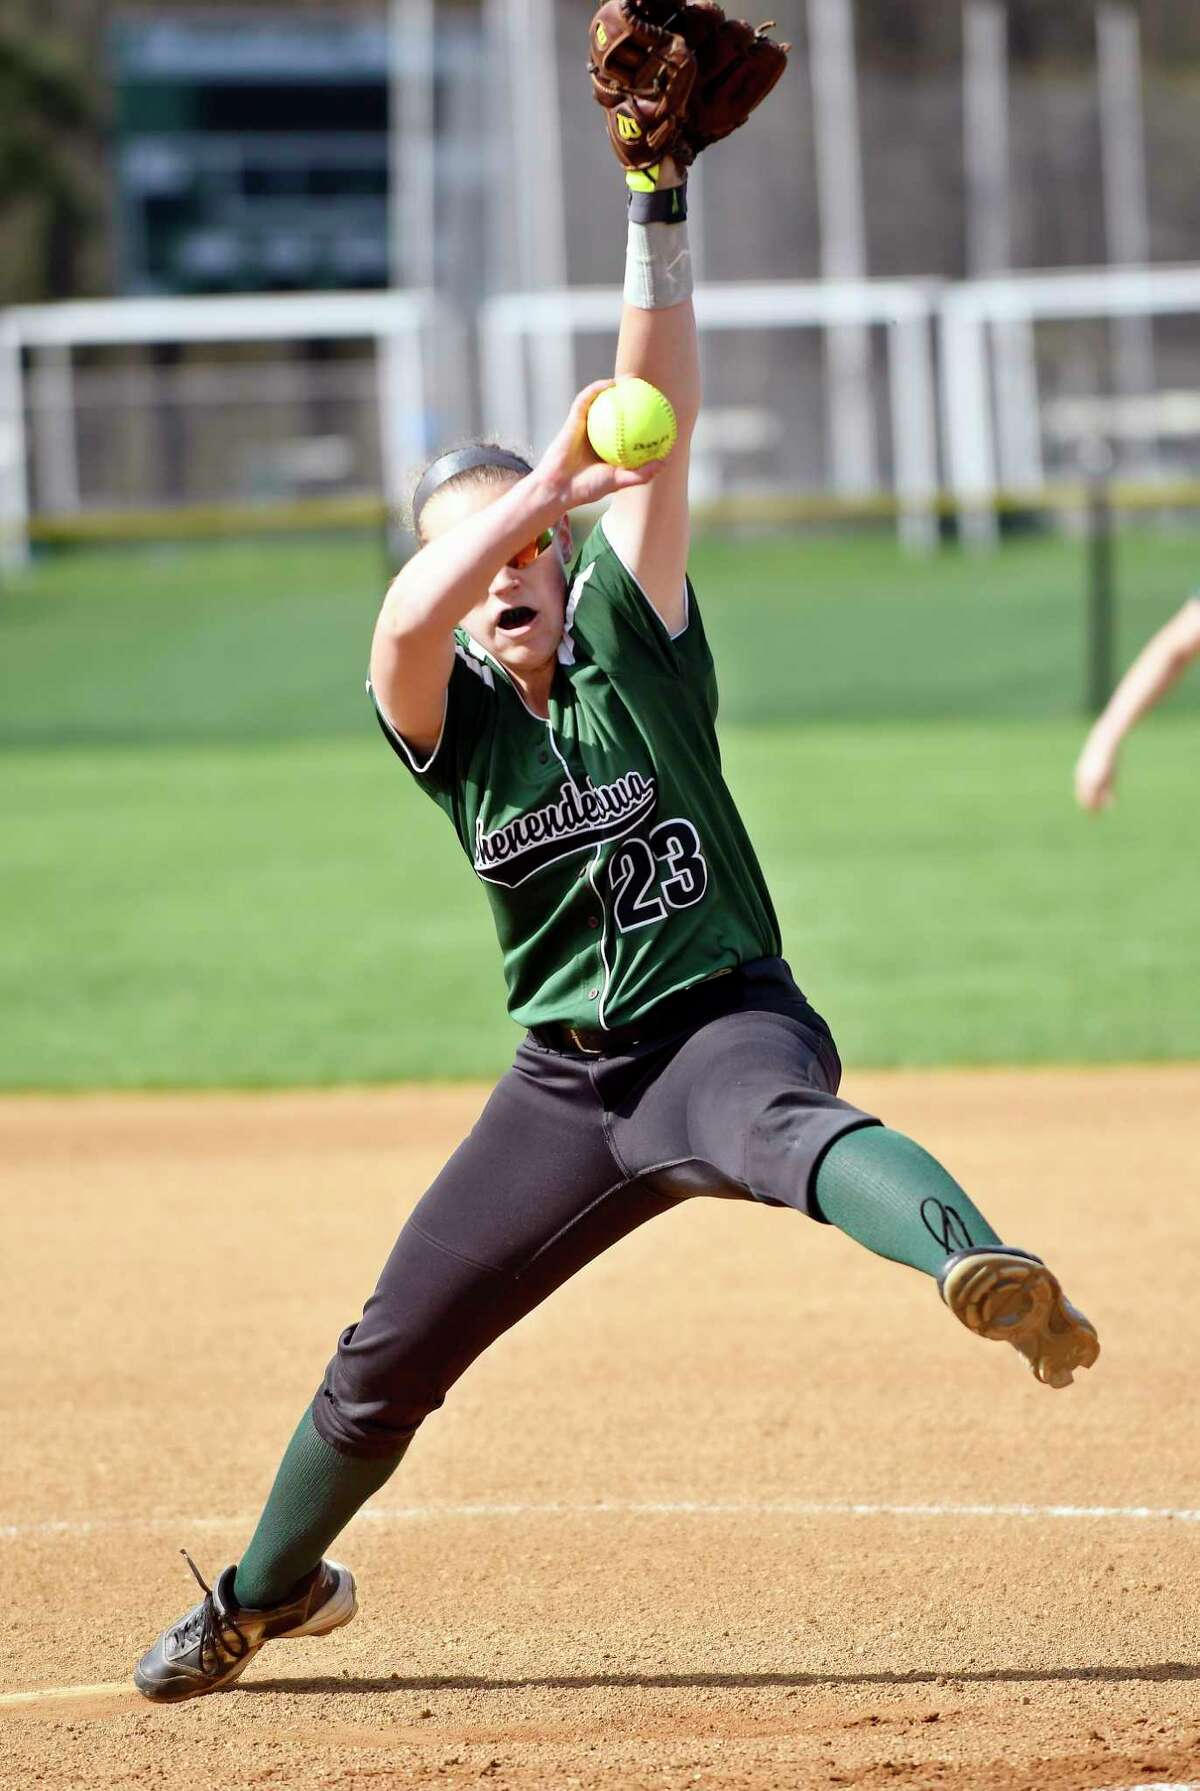 Shenendehowa's Nicole McCarvill (23) pitches against Colonie during a Section II Class AA girls high school softball game in Clifton Park, N.Y., Monday, May 1, 2017. (Hans Pennink / Special to the Times Union) ORG XMIT: HP101